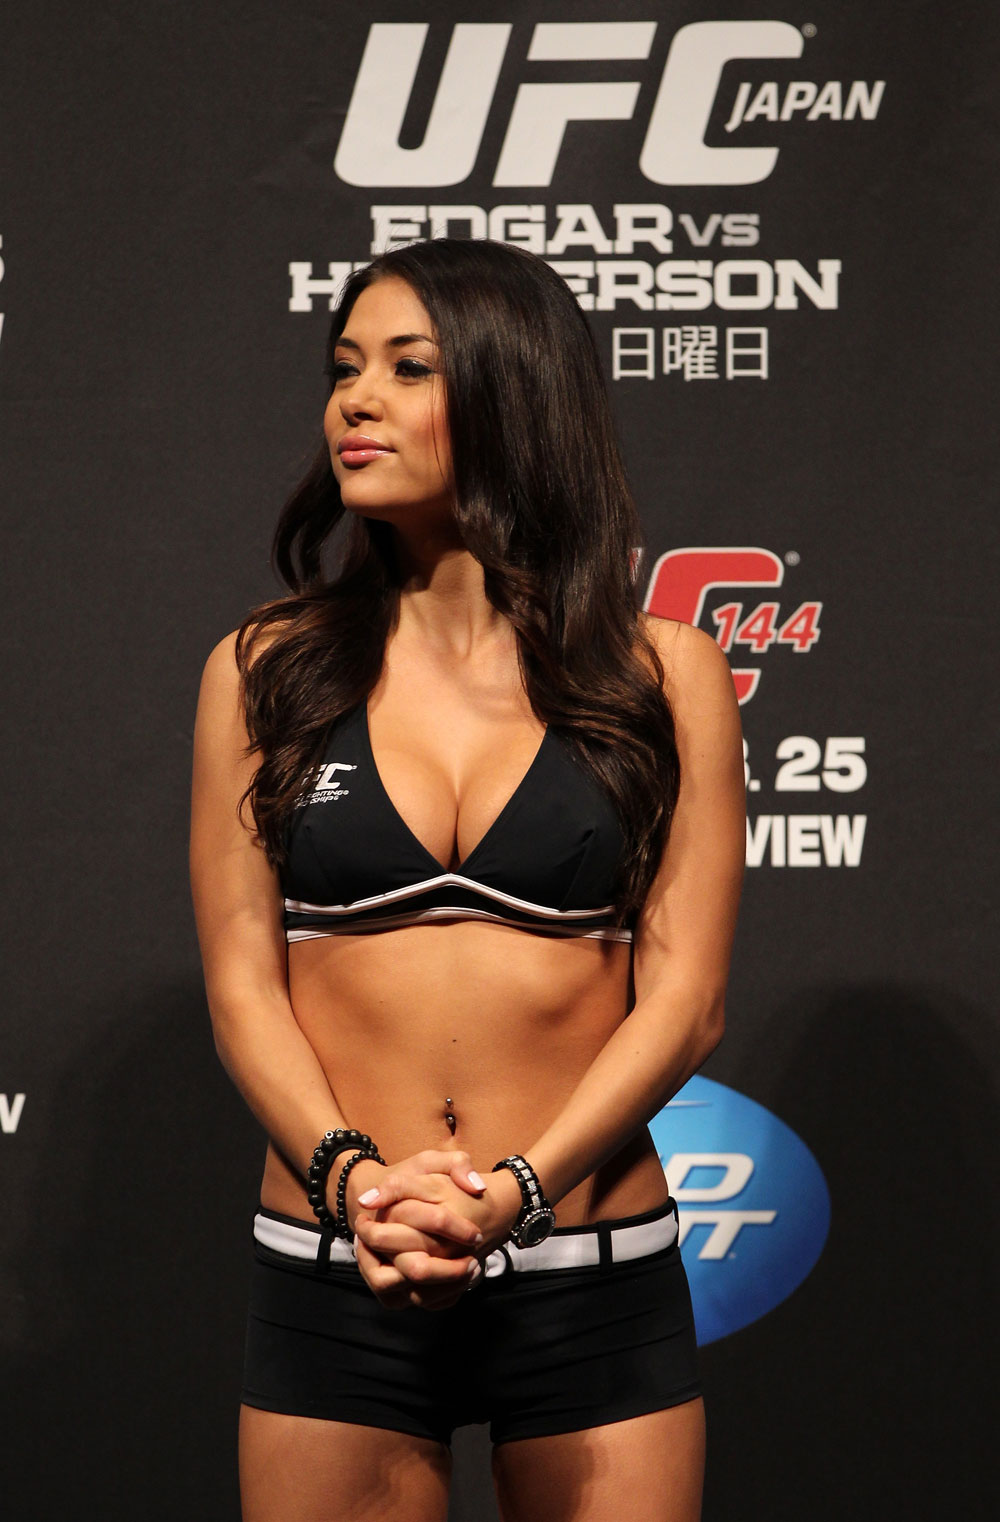 SAITAMA, JAPAN - FEBRUARY 25:  UFC Octagon Girl Arianny Celeste attends the official UFC 144 weigh in at the Saitama Super Arena on February 25, 2012 in Saitama, Japan.  (Photo by Josh Hedges/Zuffa LLC/Zuffa LLC via Getty Images) *** Local Caption *** Arianny Celeste